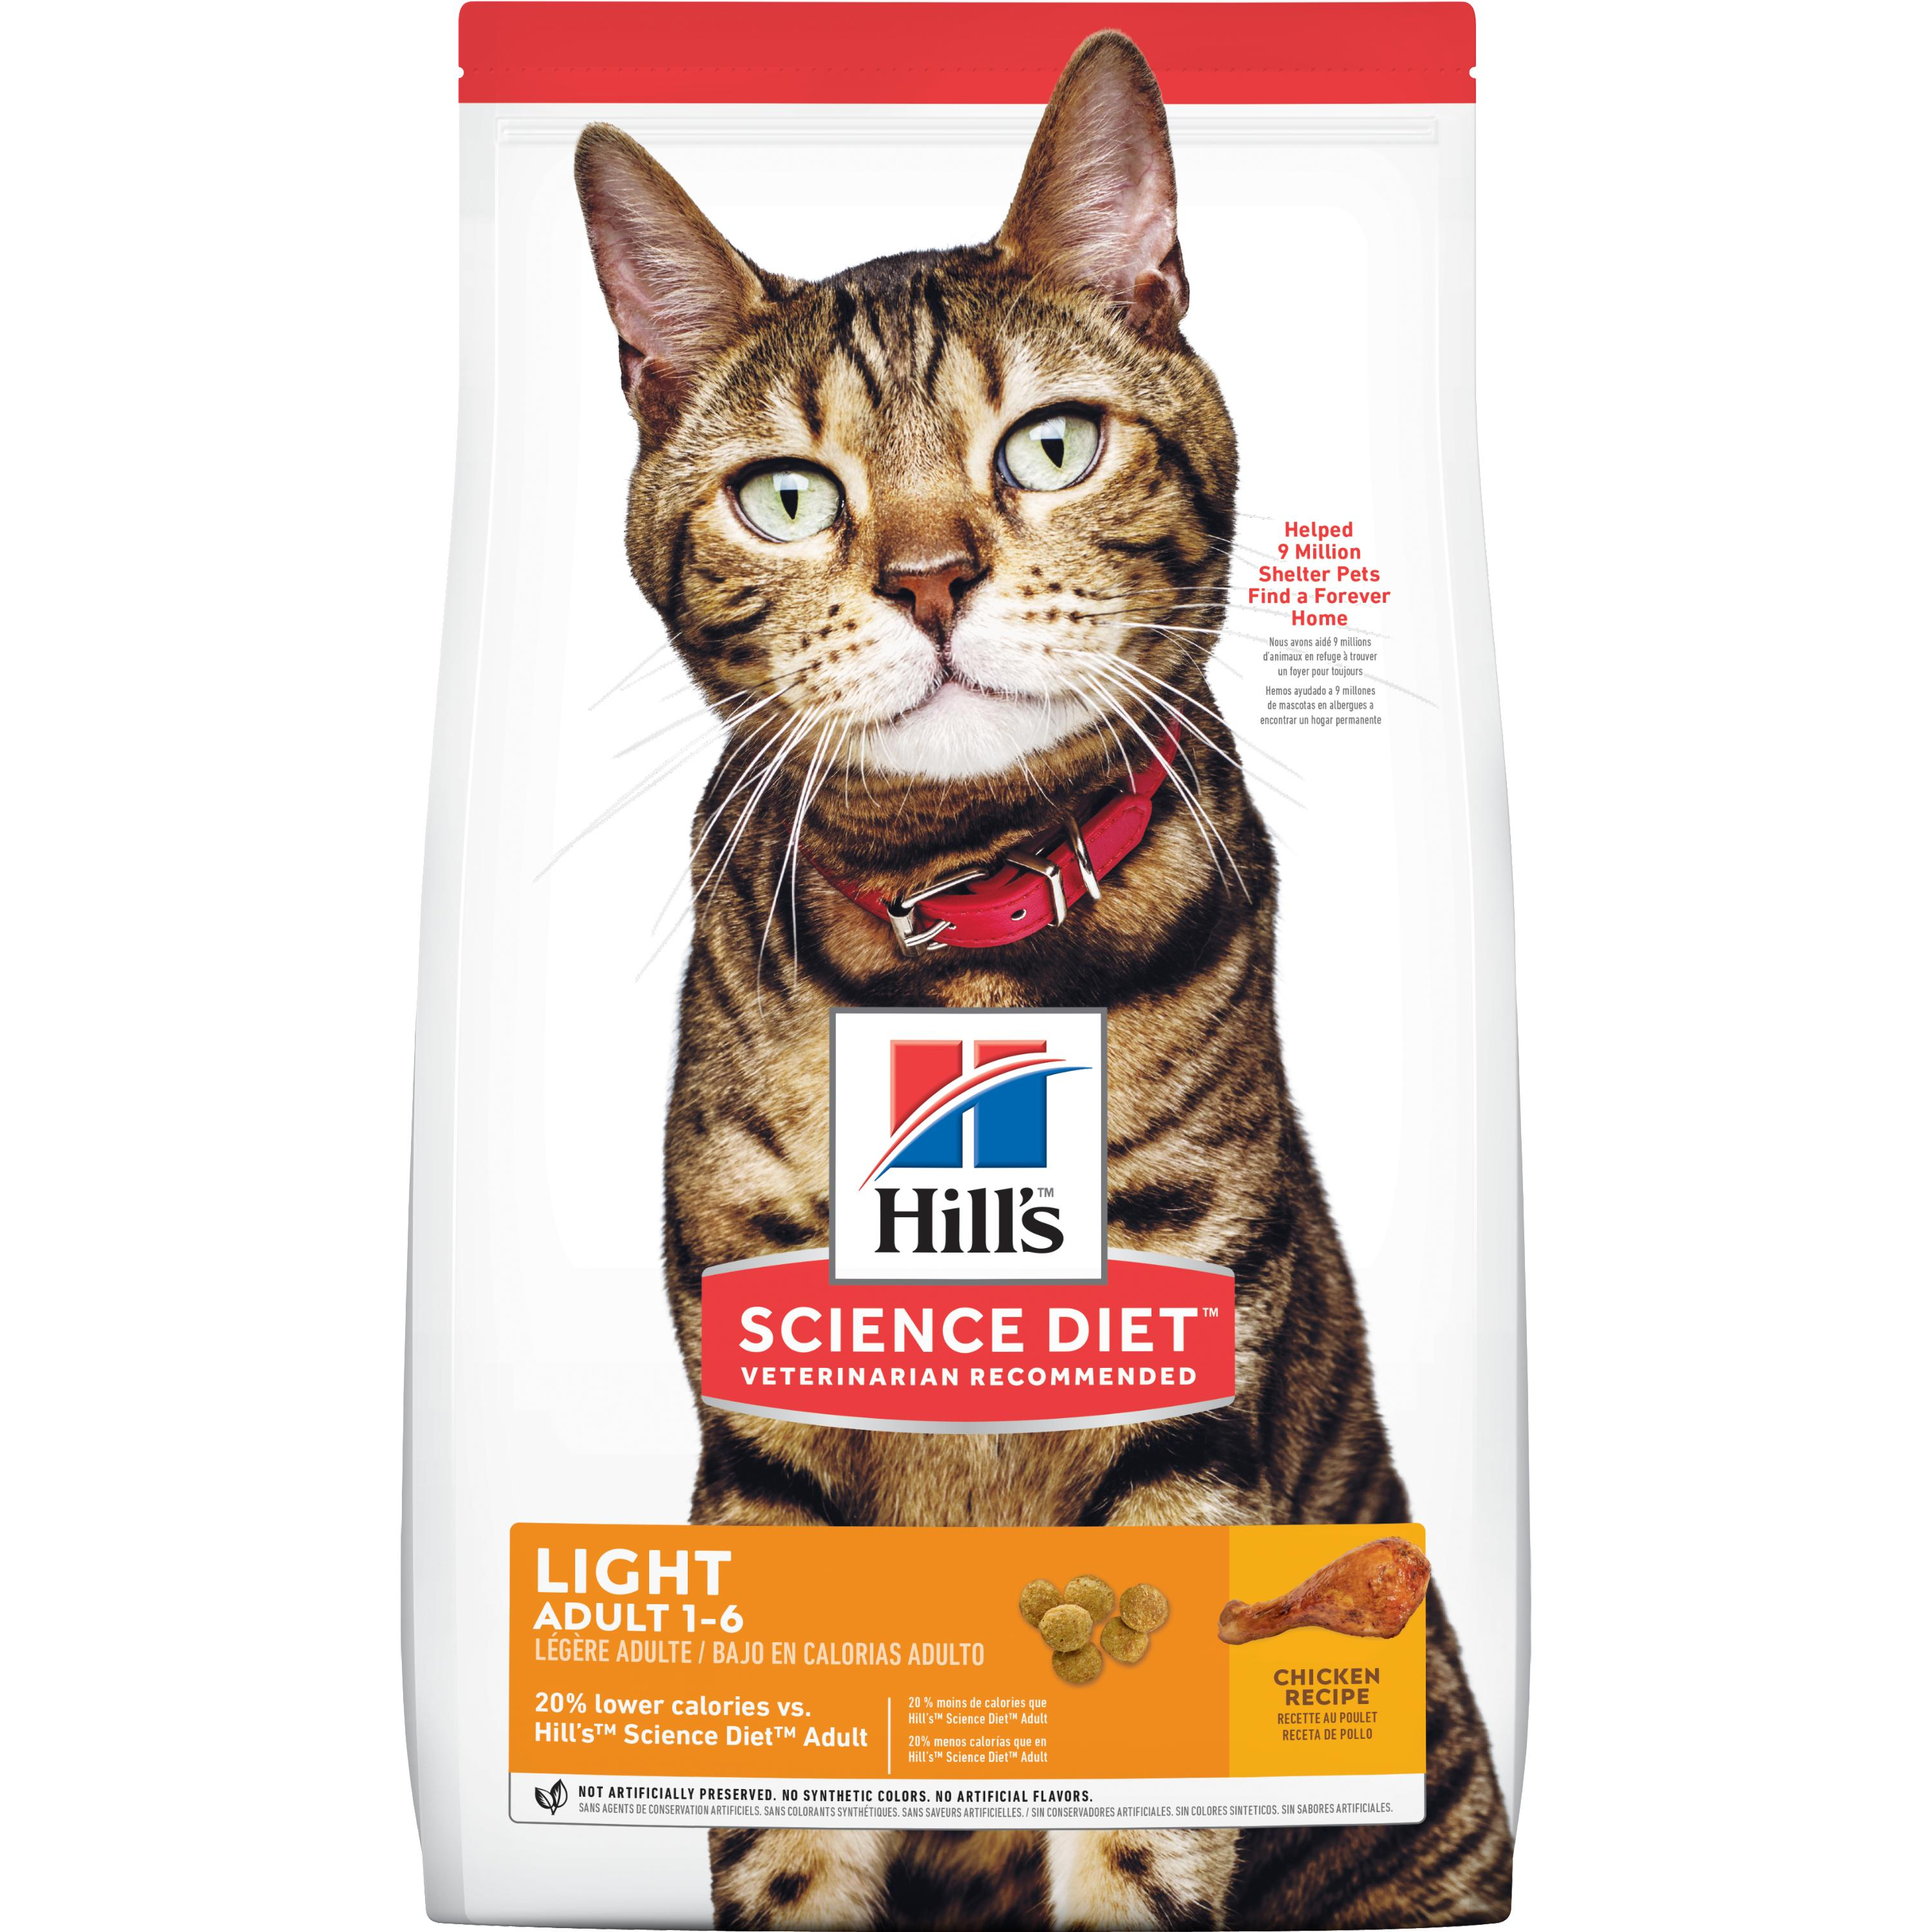 Hill's Science Diet (Spend $20,Get $5) Adult Light Chicken Recipe Dry Cat Food